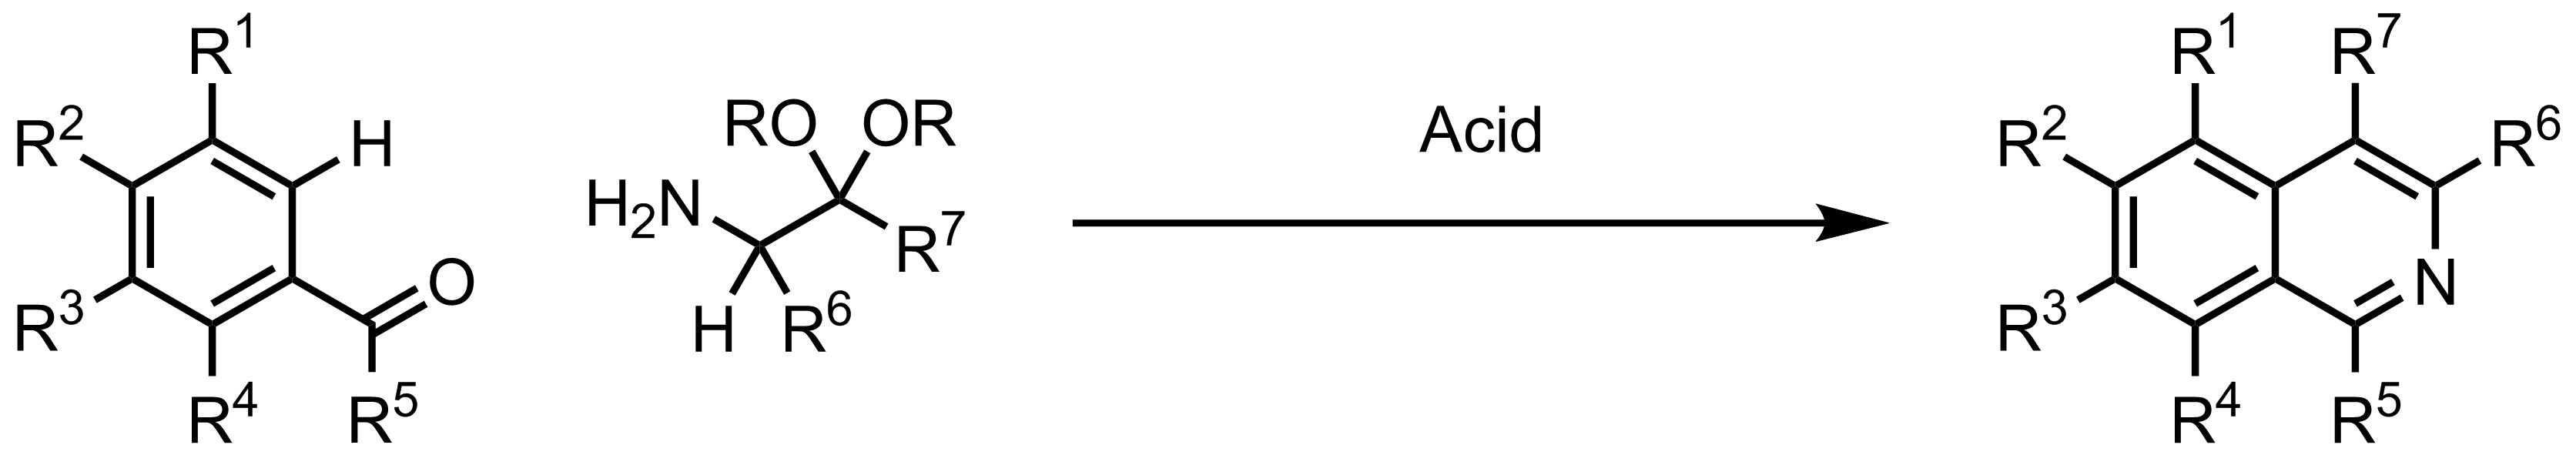 Schematic representation of the Pomeranz-Fritsch Isoquinoline Synthesis.